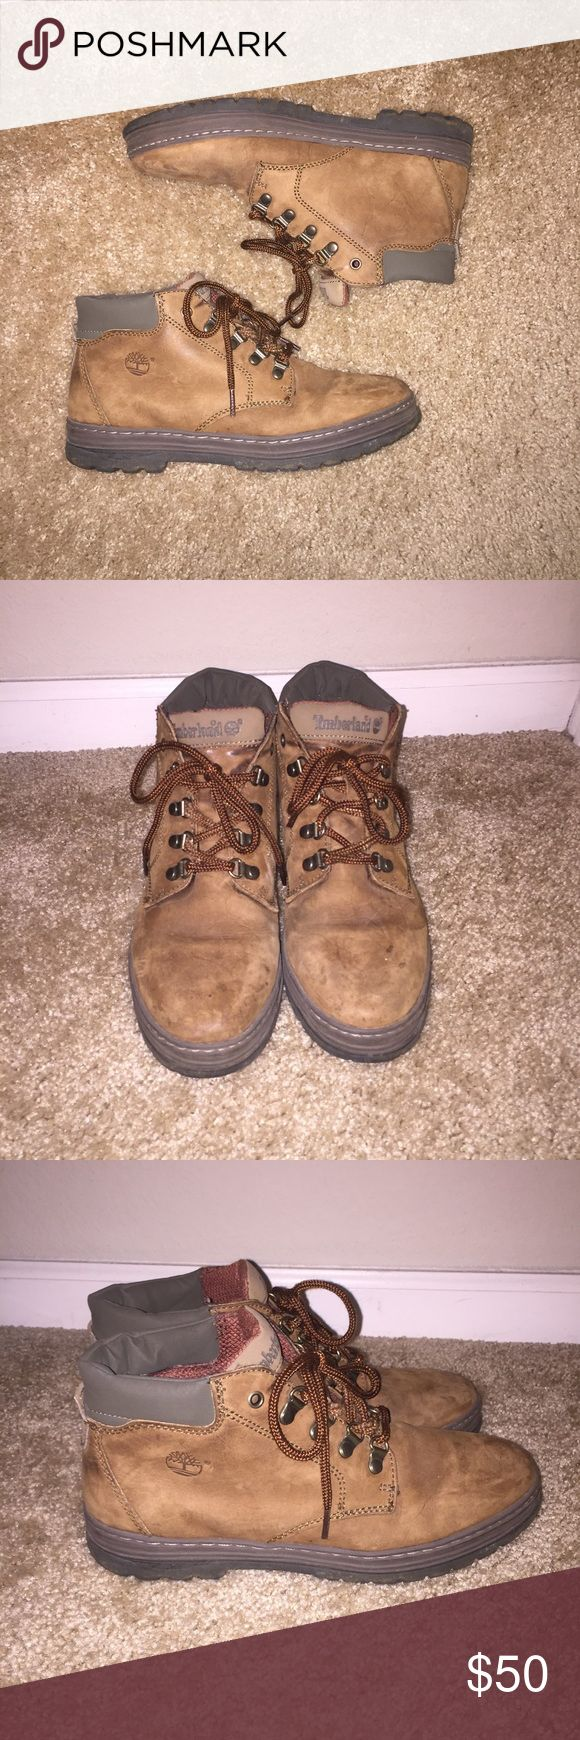 Brown Timberland Combat/Work/Hiking Boots Pretty good condition! I'm just reposhing these. I'm so sad they didn't fit me! They go up to the ankle. They're super cute, but this style is not for wide foot girls! Timberland Shoes Lace Up Boots